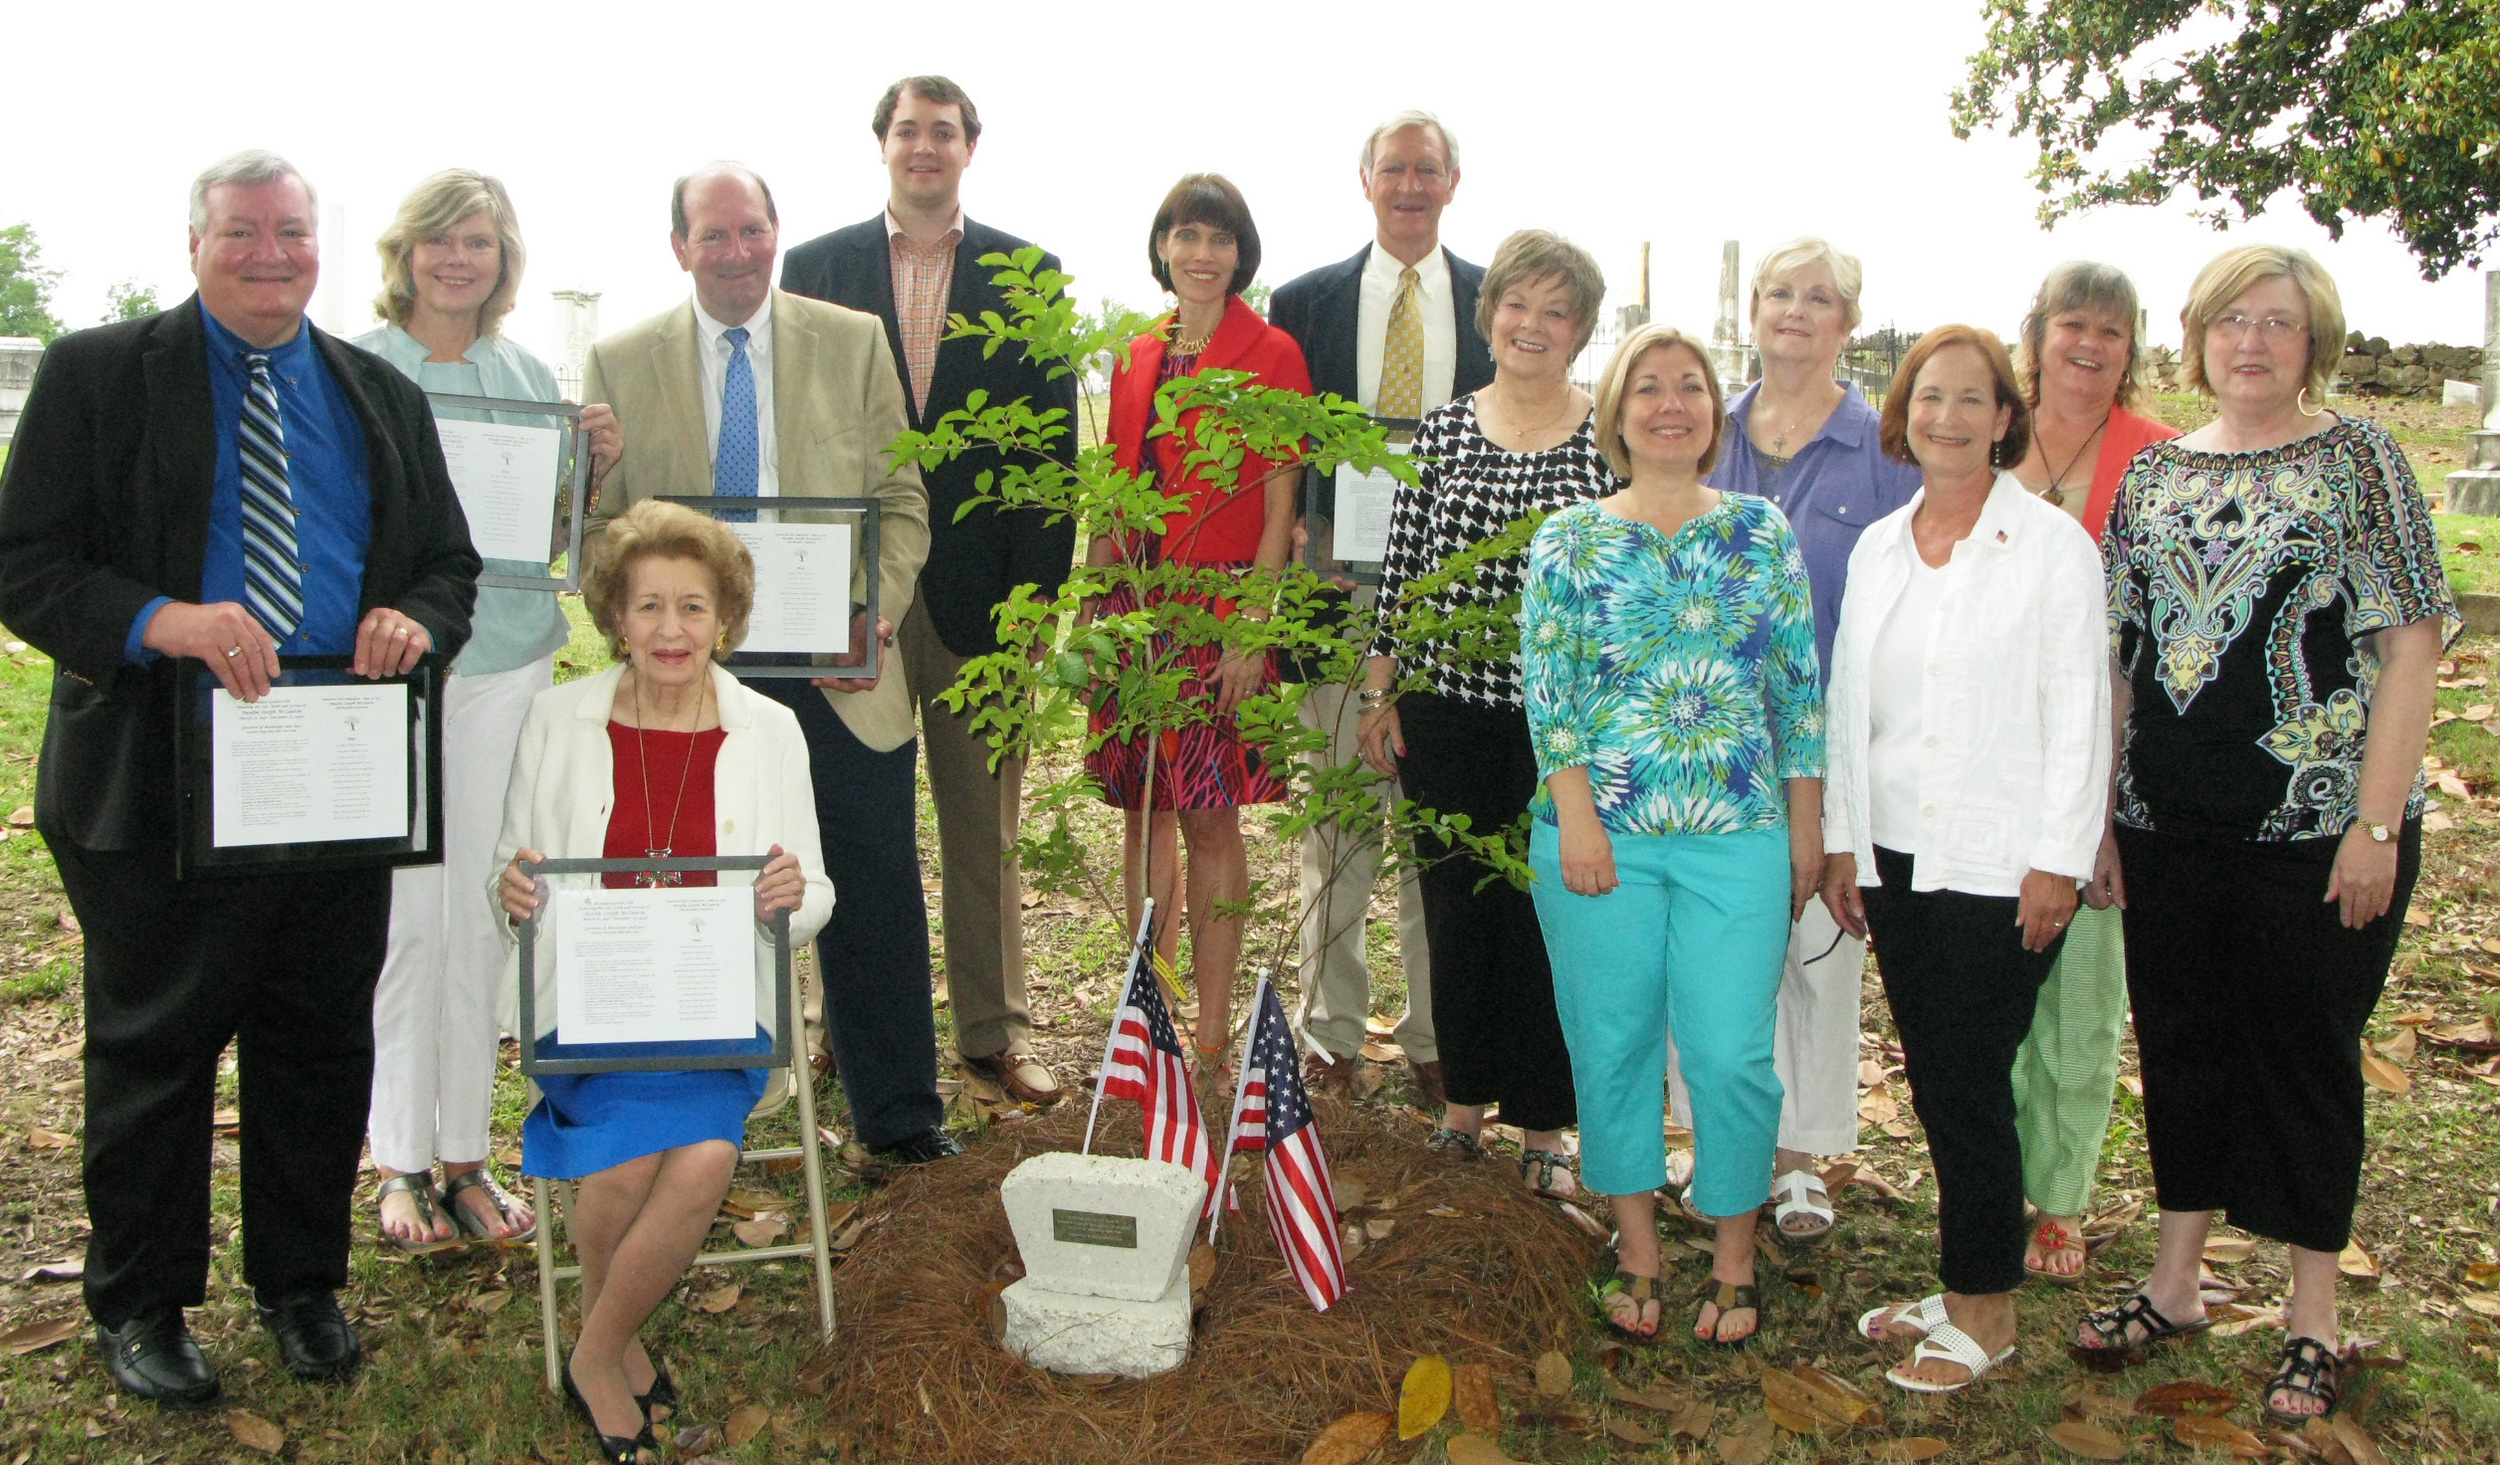 MEMORIALTREEHONORS GOVERNOR ANSELM MCLAURIN     Brandon Garden Club (BGC), The Garden Clubs of Mississippi, Inc., planted atreeand placed a plaque in Old Brandon Cemetery honoring the life, work, and service of Anselm Joseph McLaurin, Governor of Mississippi 1896 to 1900. Several of his descendants live in the Brandon area and came to the dedication service conducted by BGCMemorialTreeChairman Lynn Mahoney.  Pictured at the dedication, seated: Janet McLaurin. Standing (l to r): John McLaurin, Jr., Susan McLaurin Henslee, Anse McLaurin, Wallace McLaurin, Trudy McLaurin, Sidney McLaurin, Karen Crowe, Susan Vigh, Sharon Hoffman, BGC  Memorial    Tree  Chairman Lynn Mahoney, Martha Powell, and BGC President Dixie Vance.